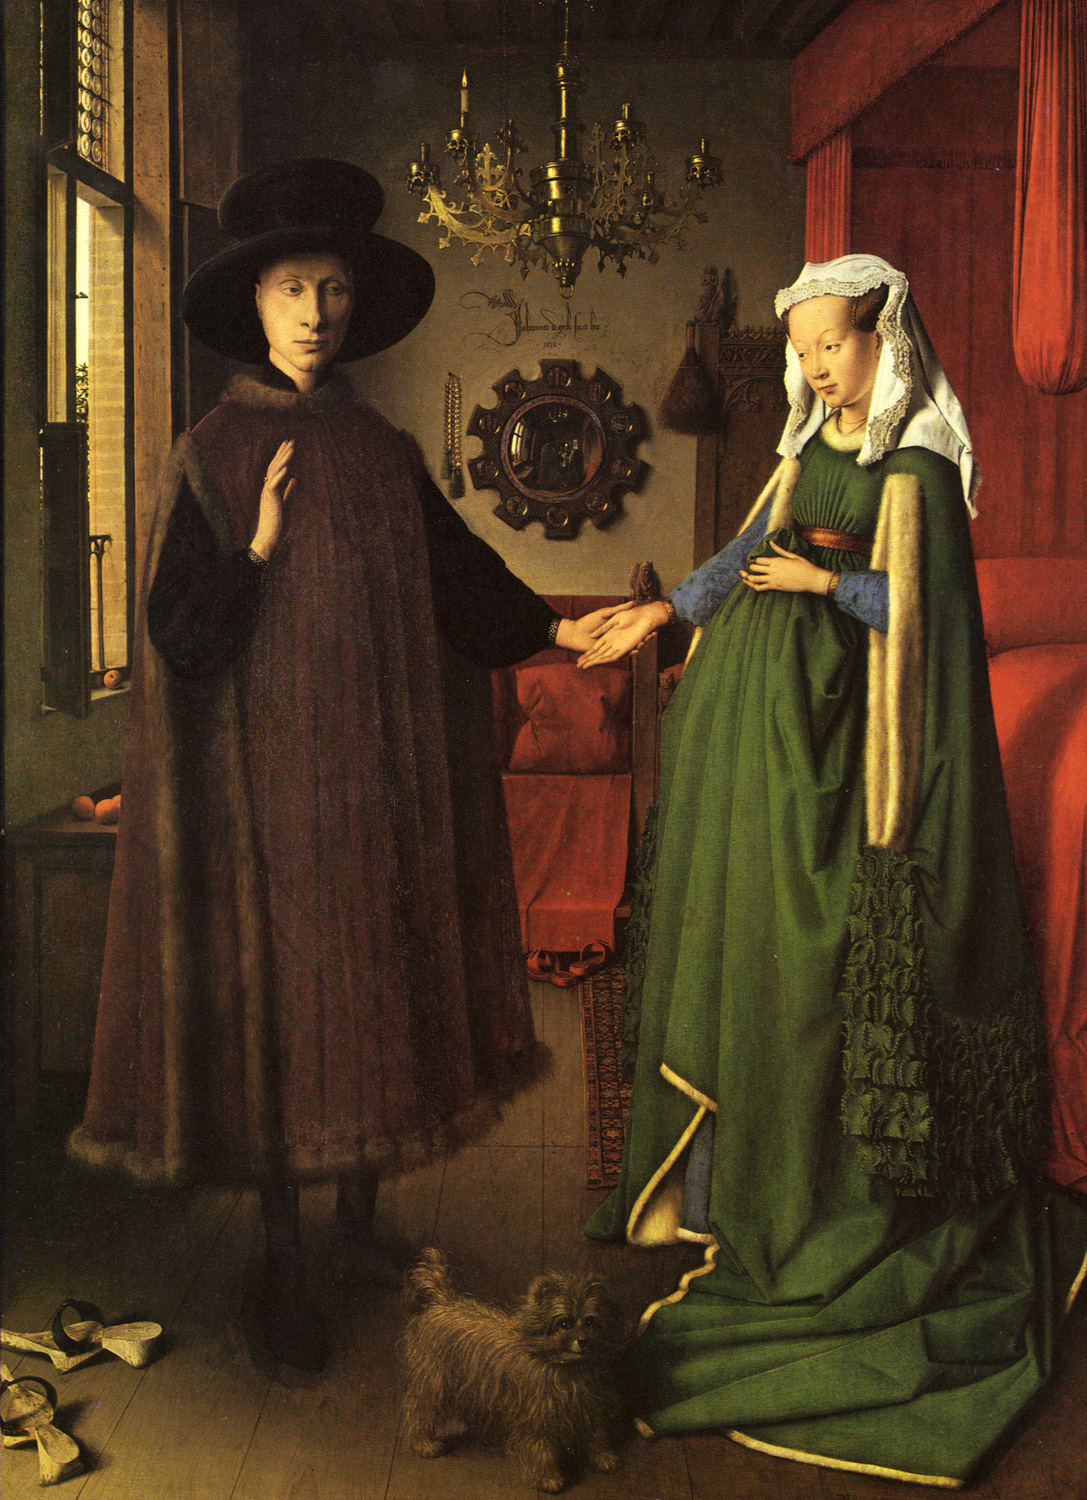 Van Eyck, The Arnolfini Portrait